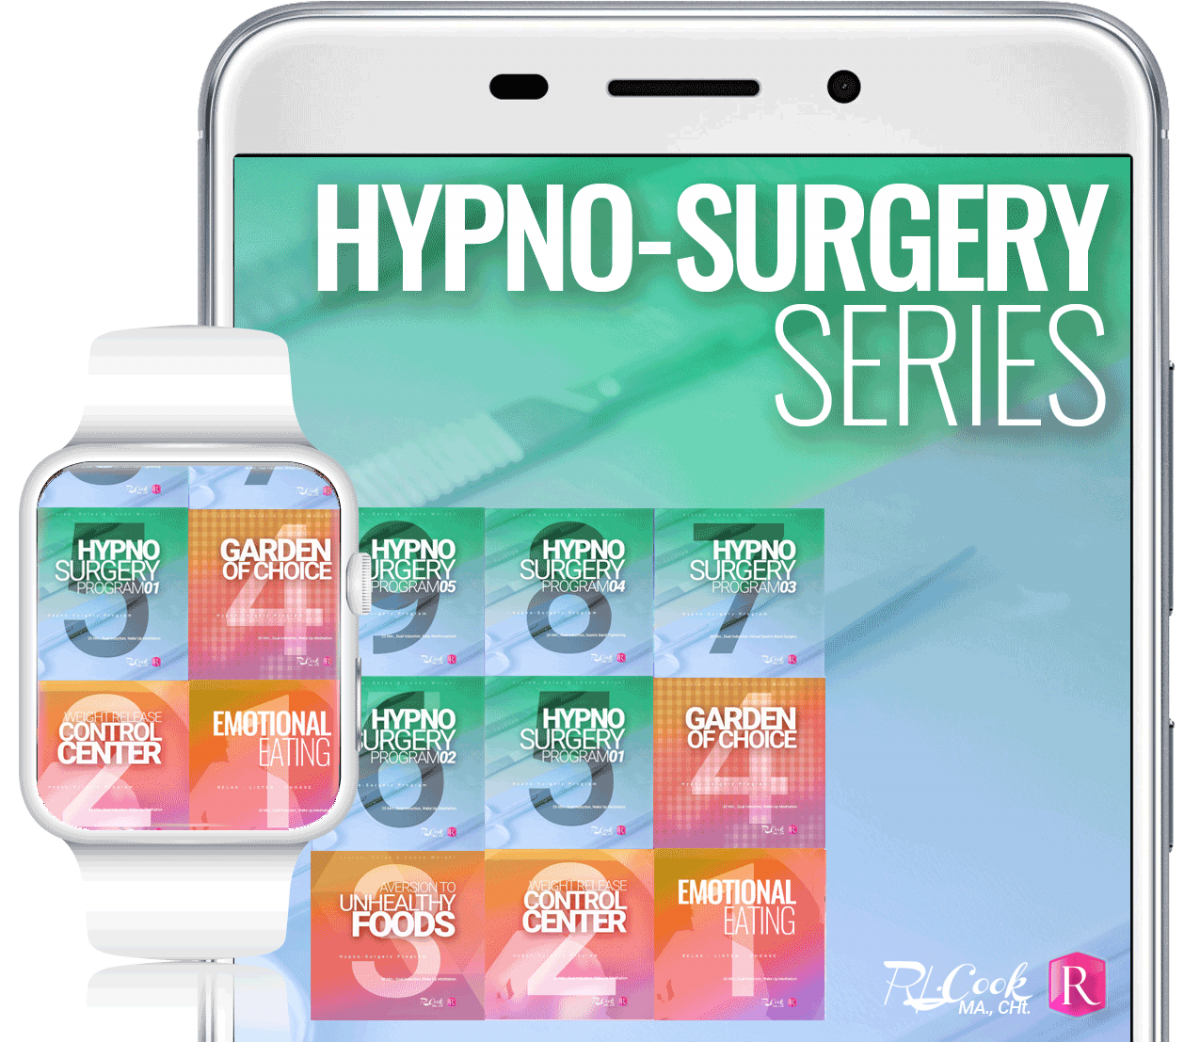 Hypno-Surgery Series by Rochelle L. cook, MA., CHt.